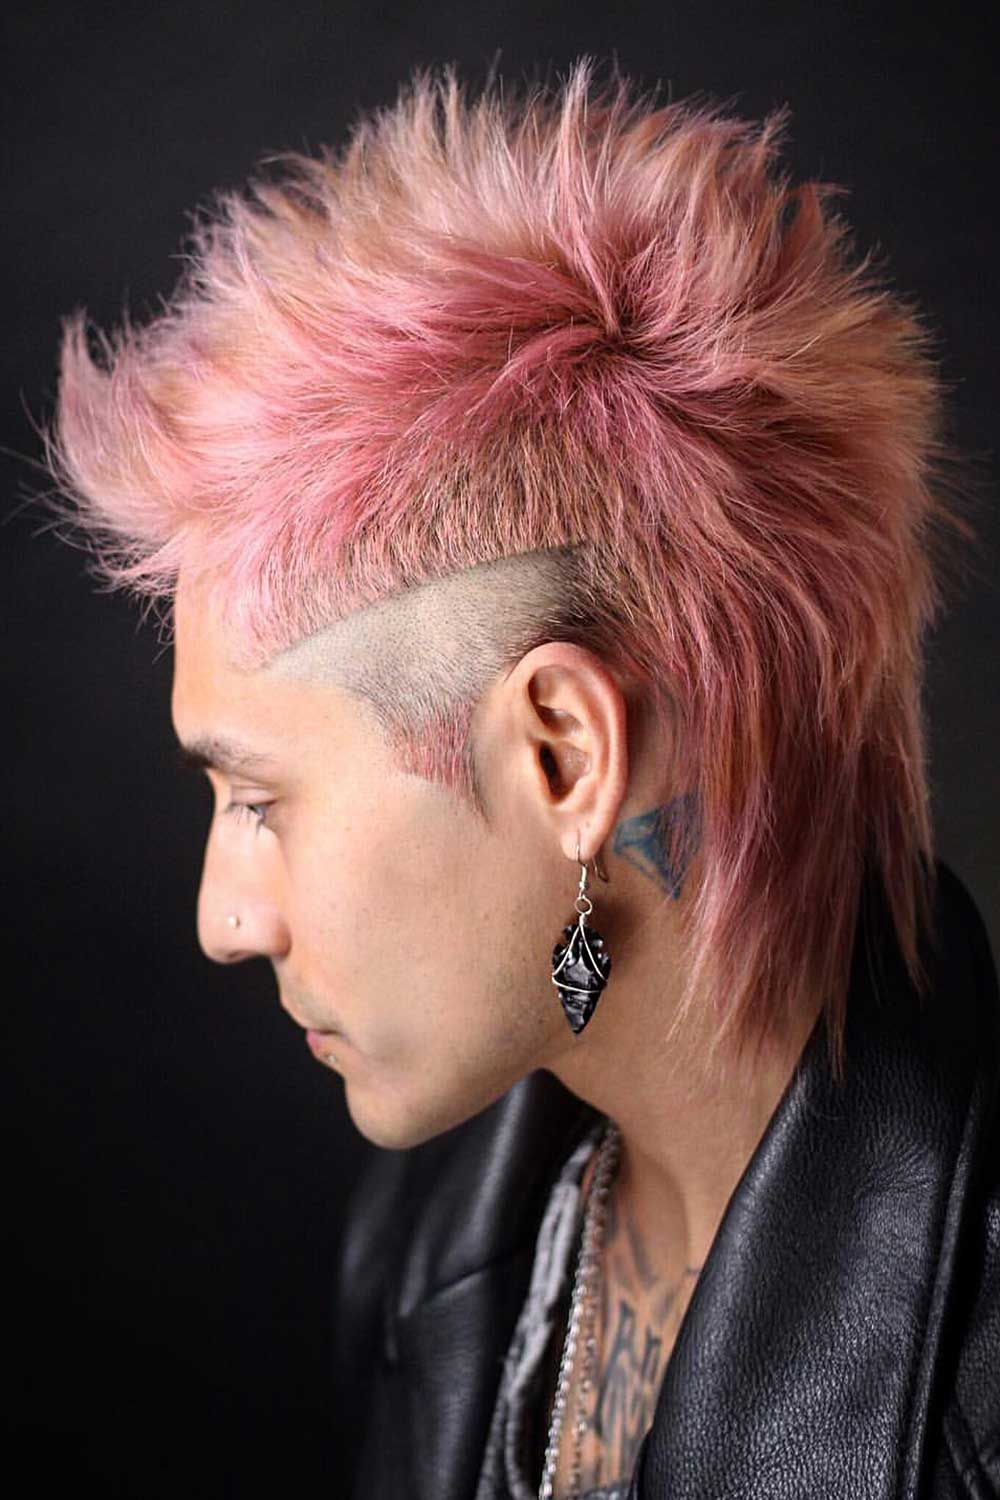 A Styling Guide To A Modern Mullet Haircut Menshaircuts Com Mullet Haircut Mullet Hairstyle Hair Styles